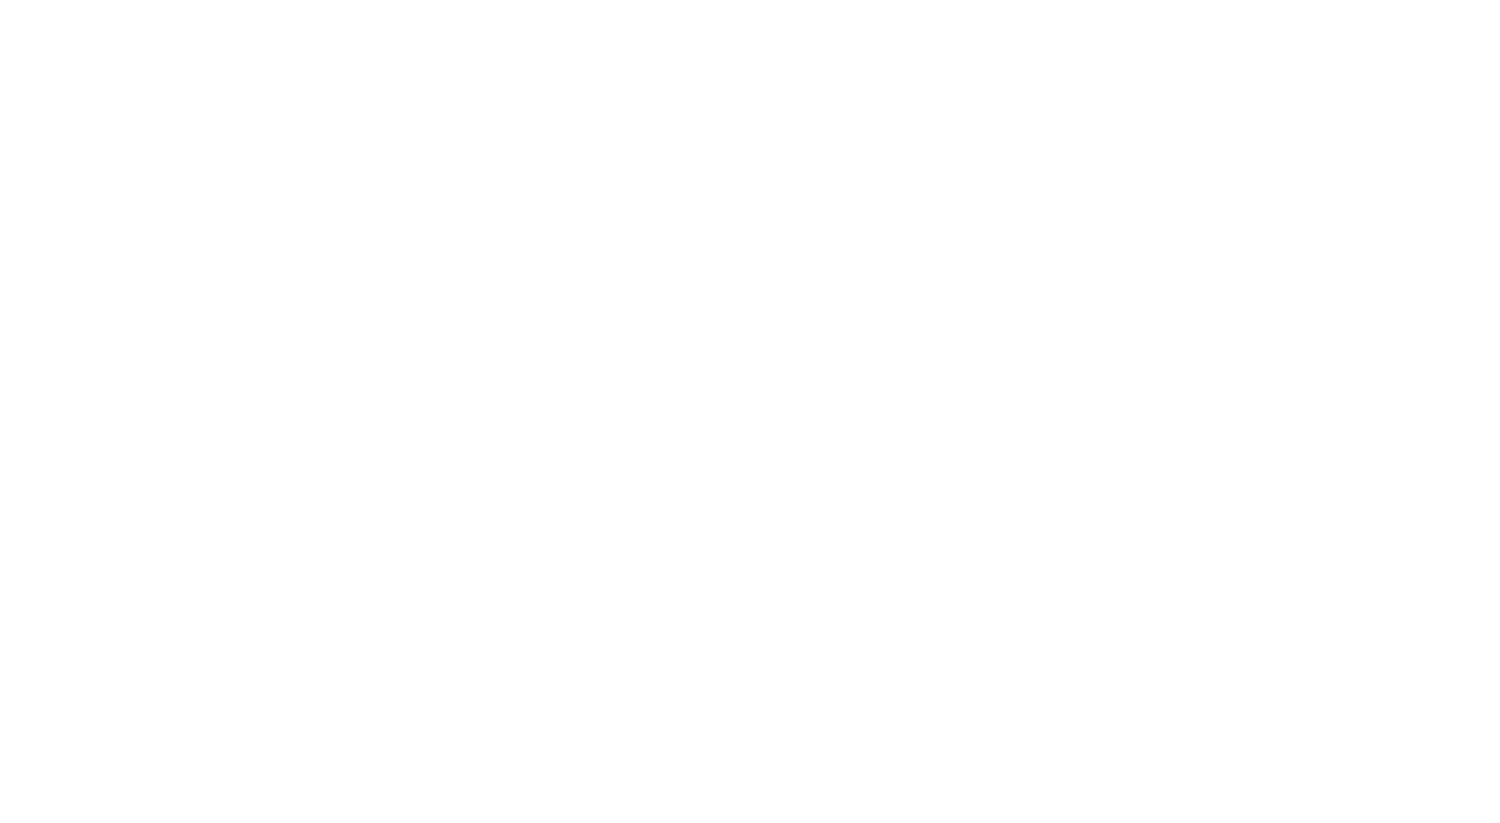 Bubblemancy